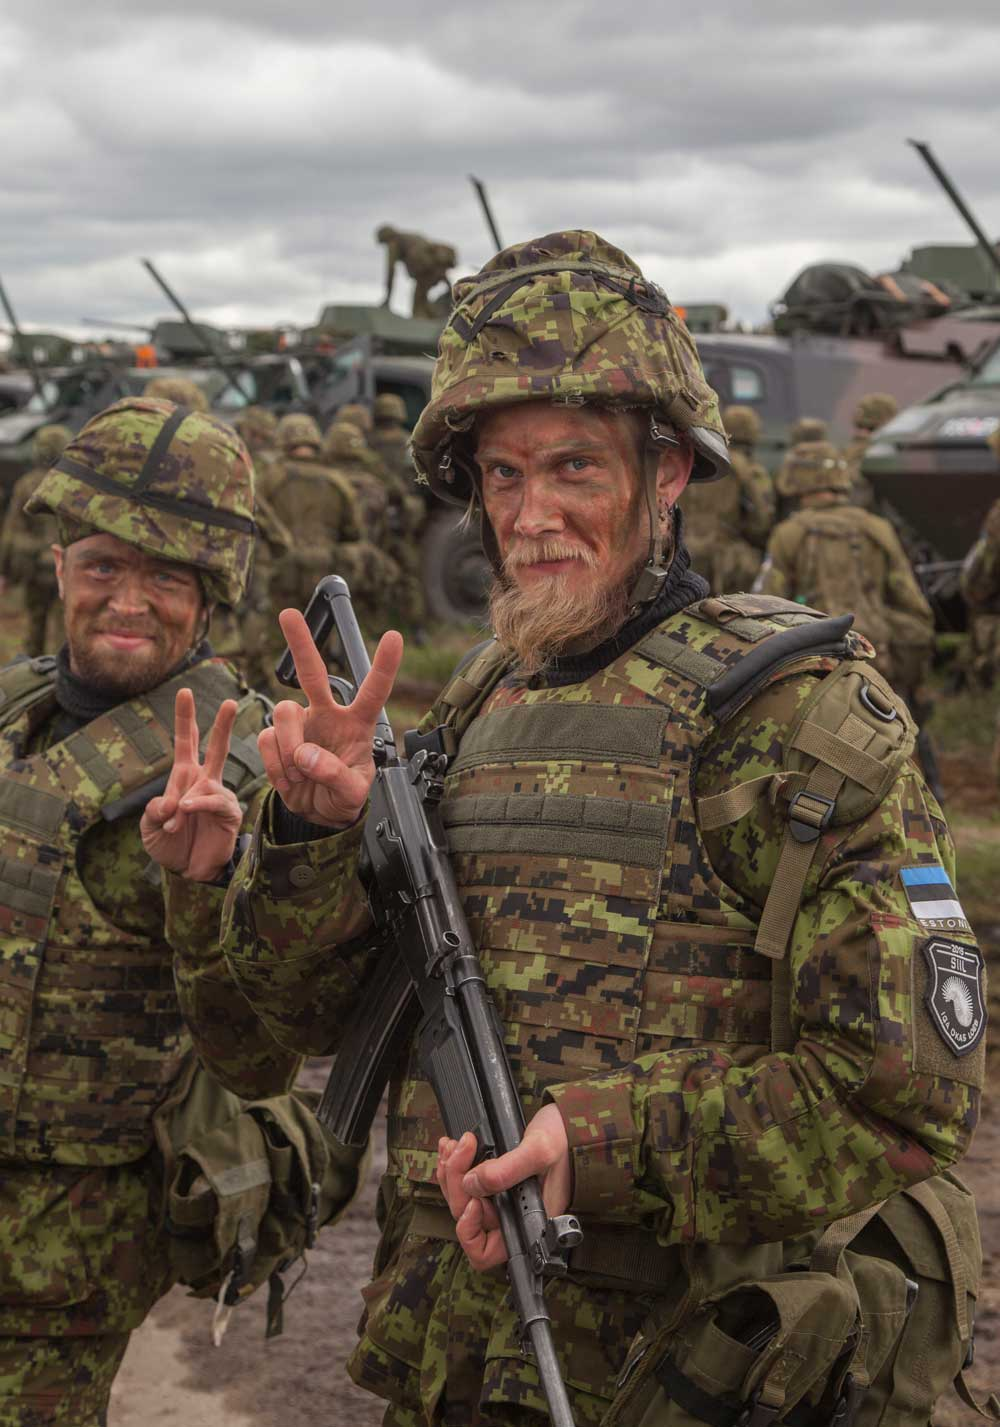 Estonian reservists at and exercise.